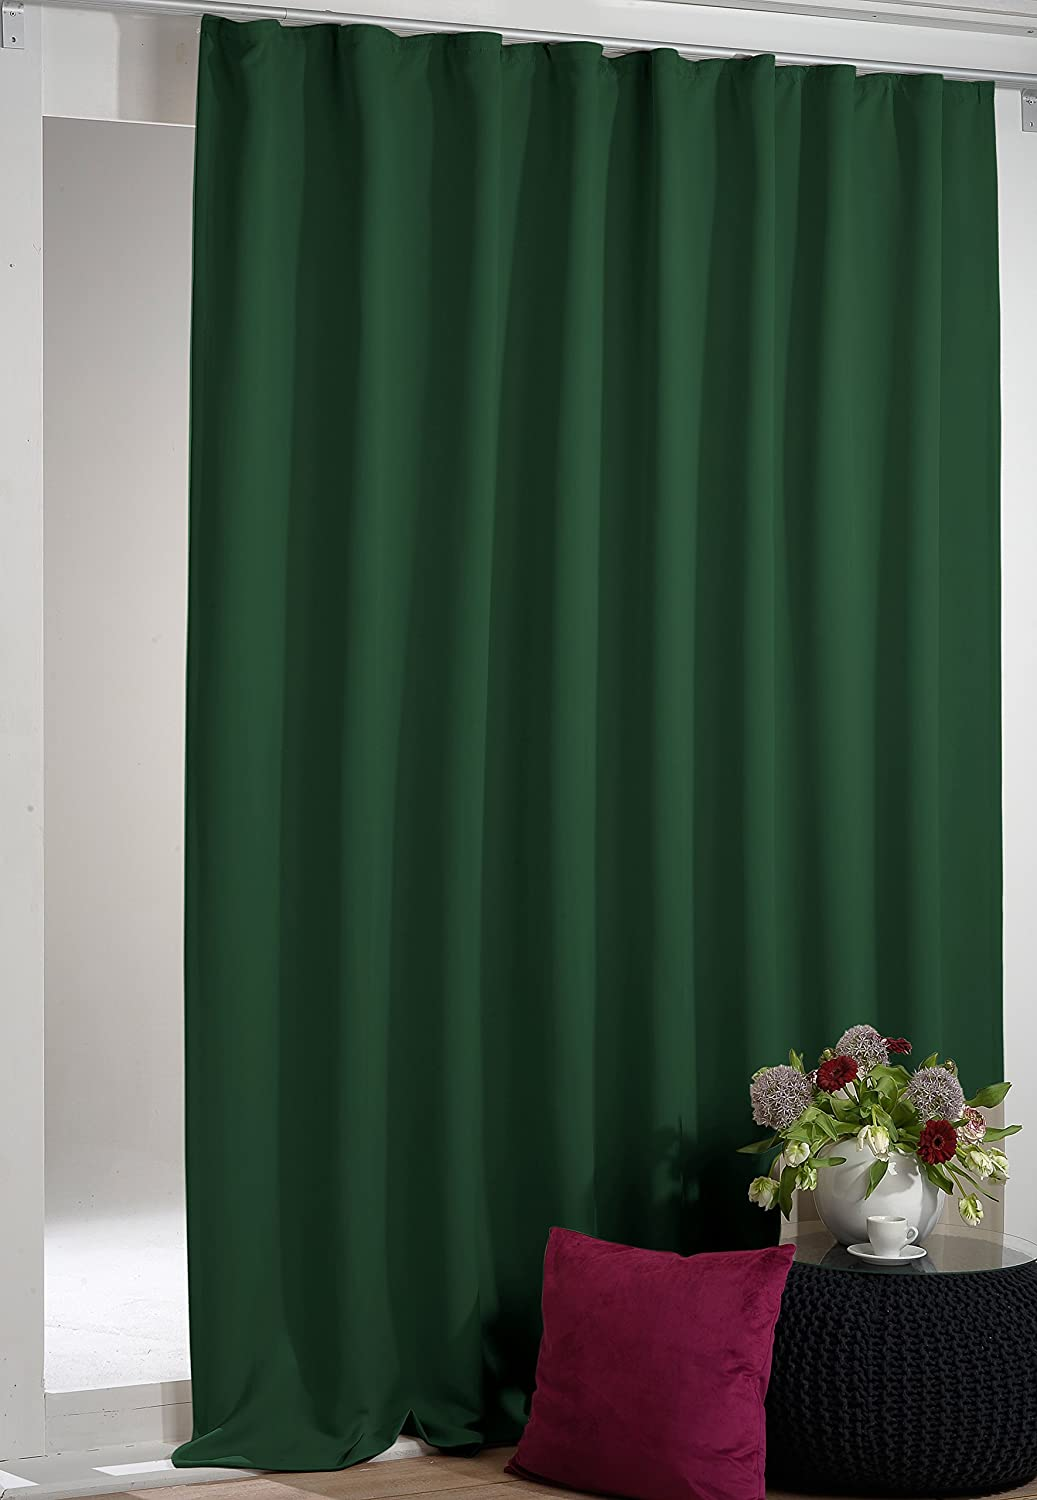 patterned shops white stores panels size teal bedroom roomcurtain perfect drapes large living curtains simple blue cream dark of turquoise navy with gold near and me curtain brown for room